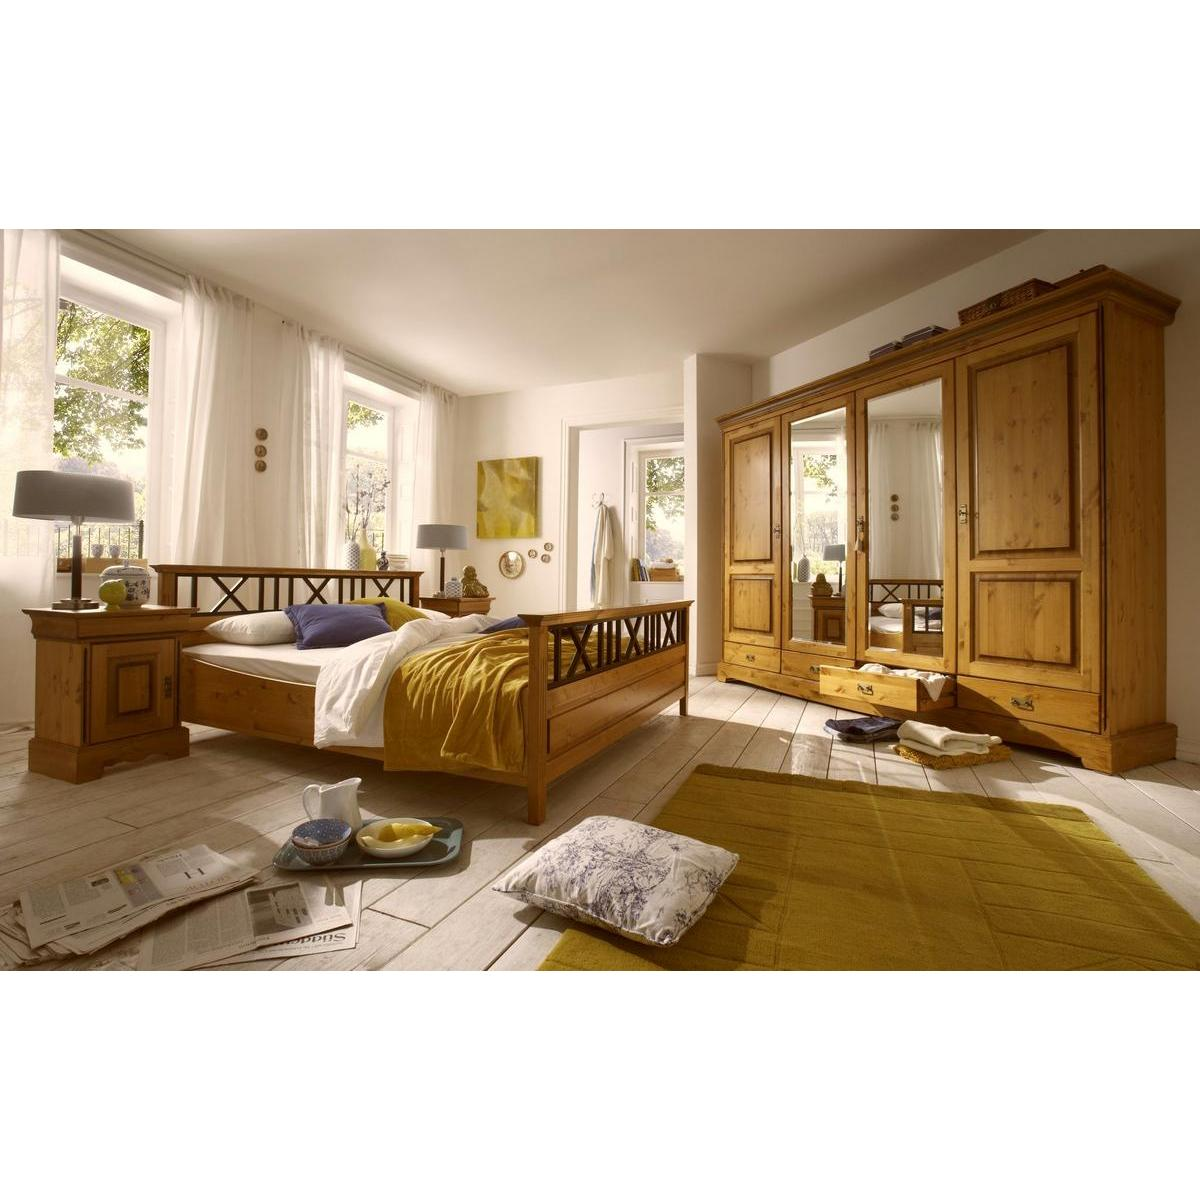 massivholz doppelbett 200x200 paris kiefer massiv goldbraun lackiert. Black Bedroom Furniture Sets. Home Design Ideas